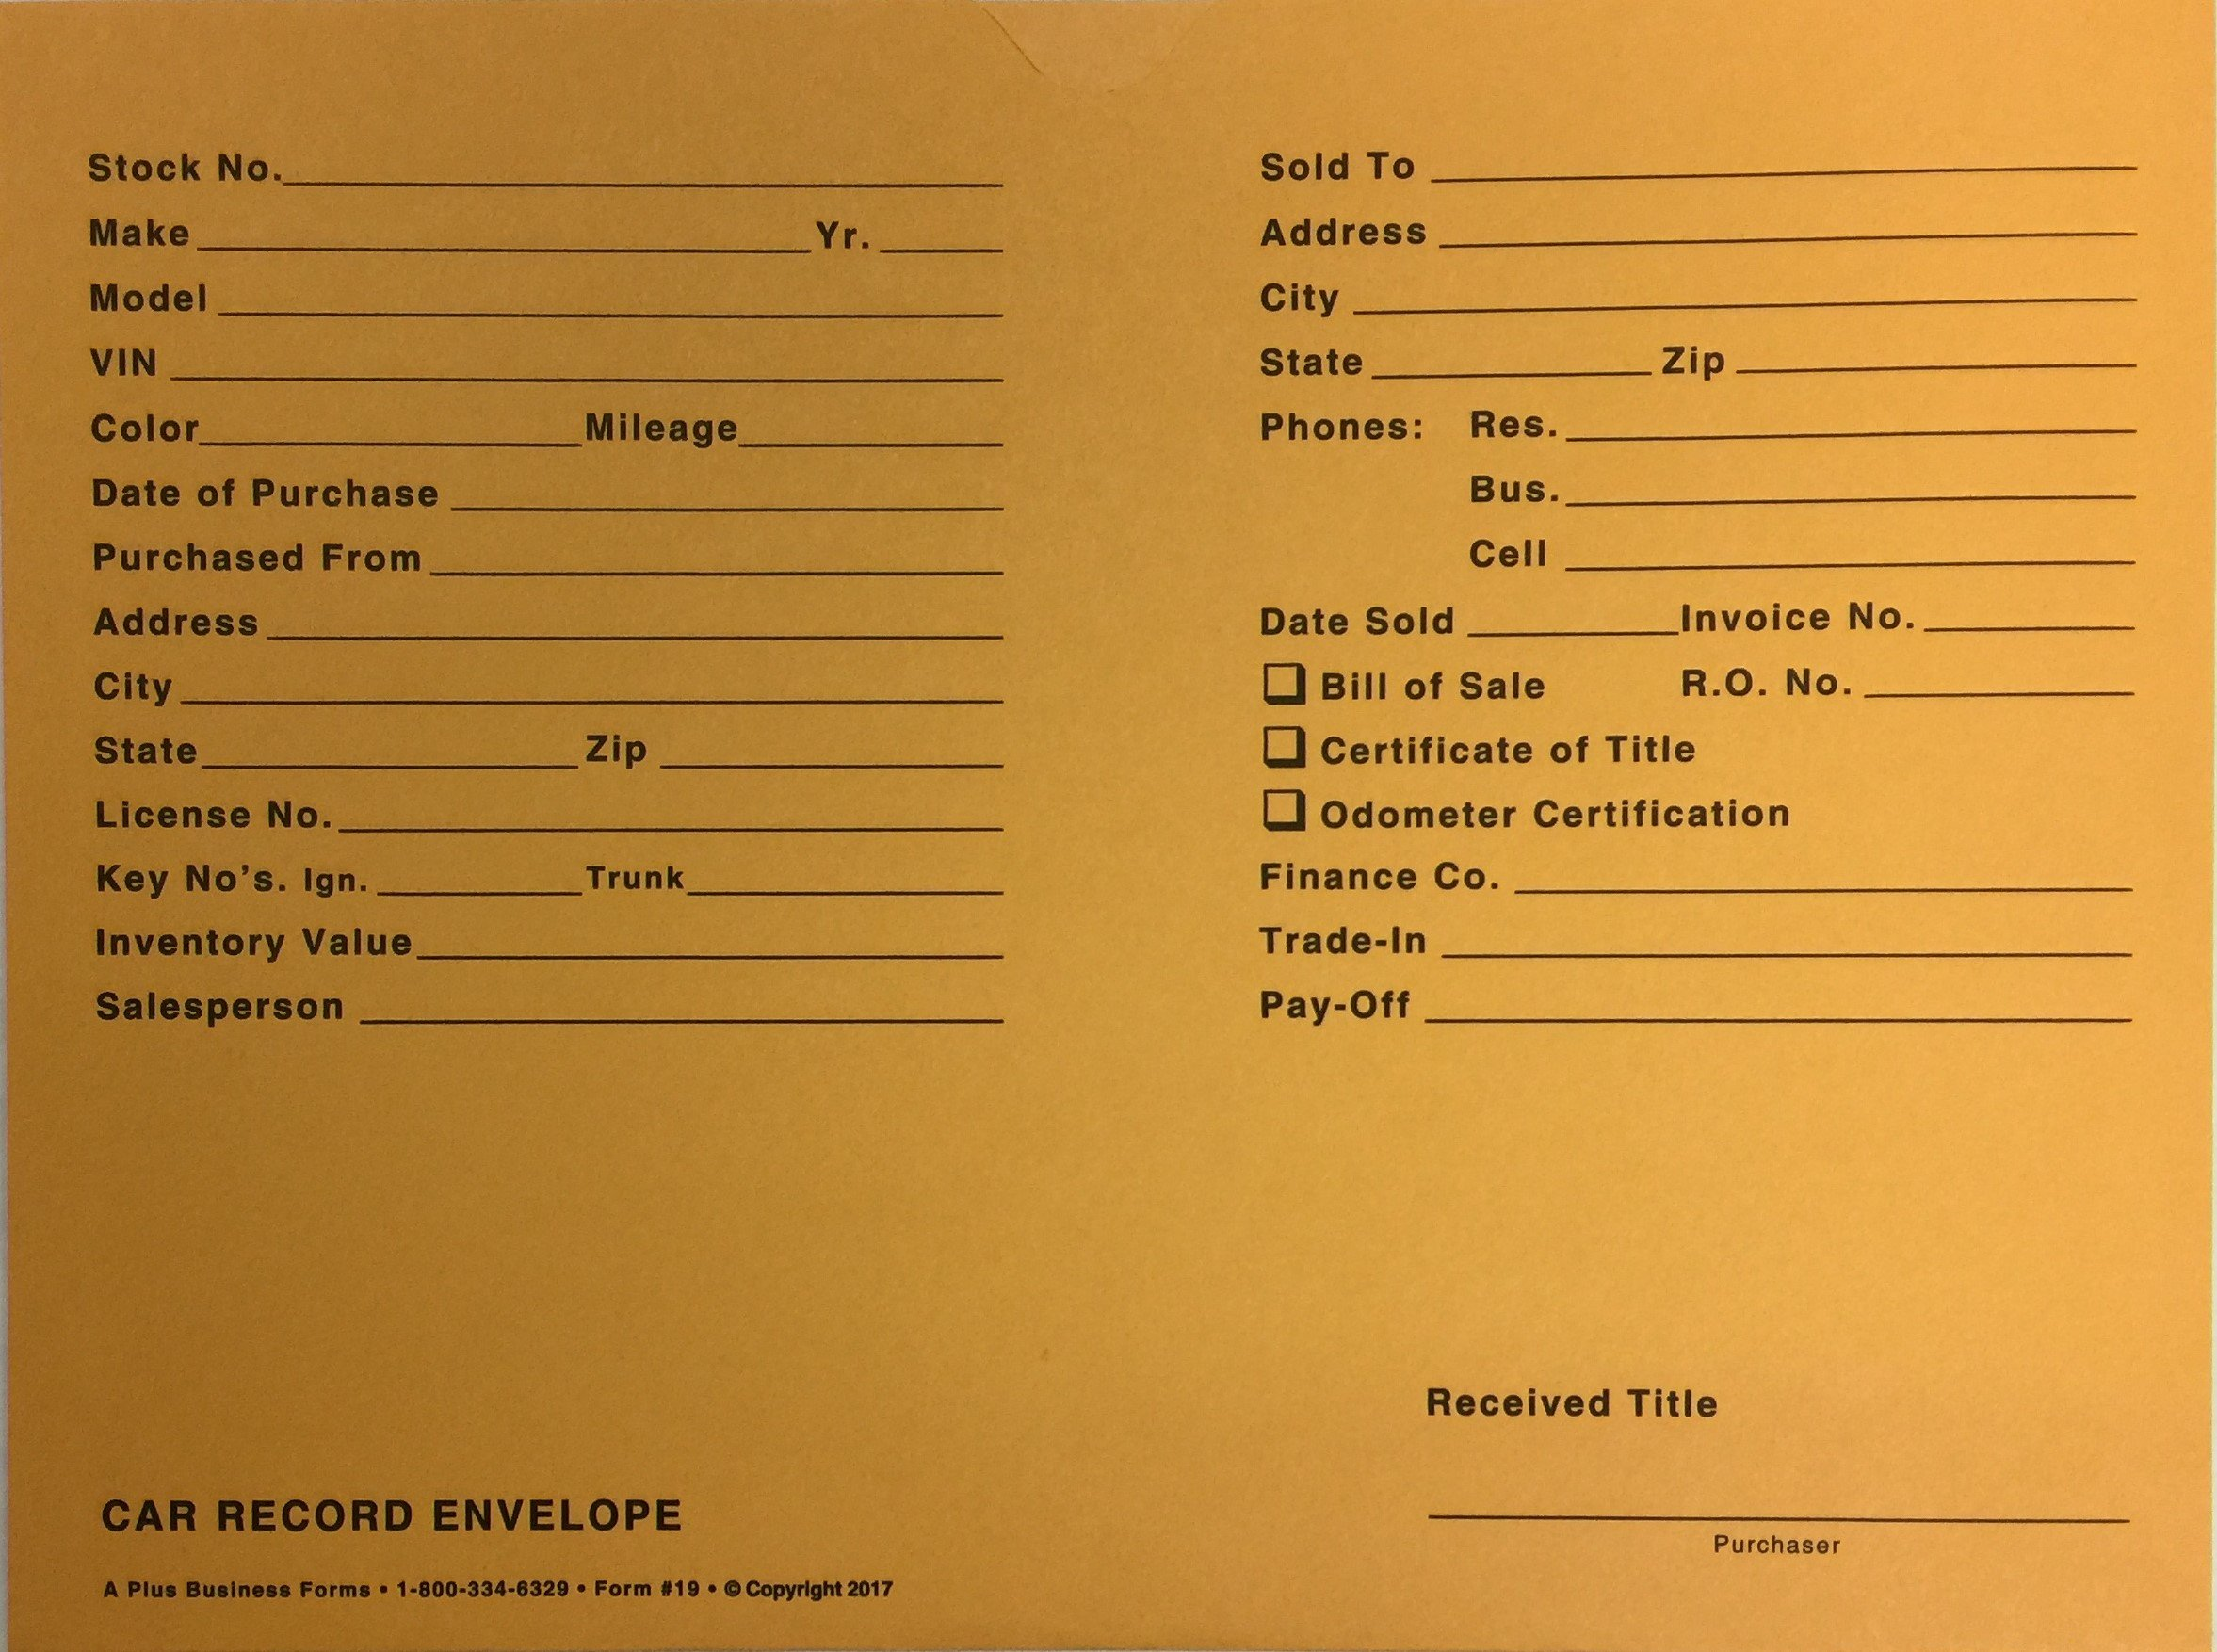 Car Record Envelope #19 Vehicle Deal Jackets, 500 Quantity (Gold)